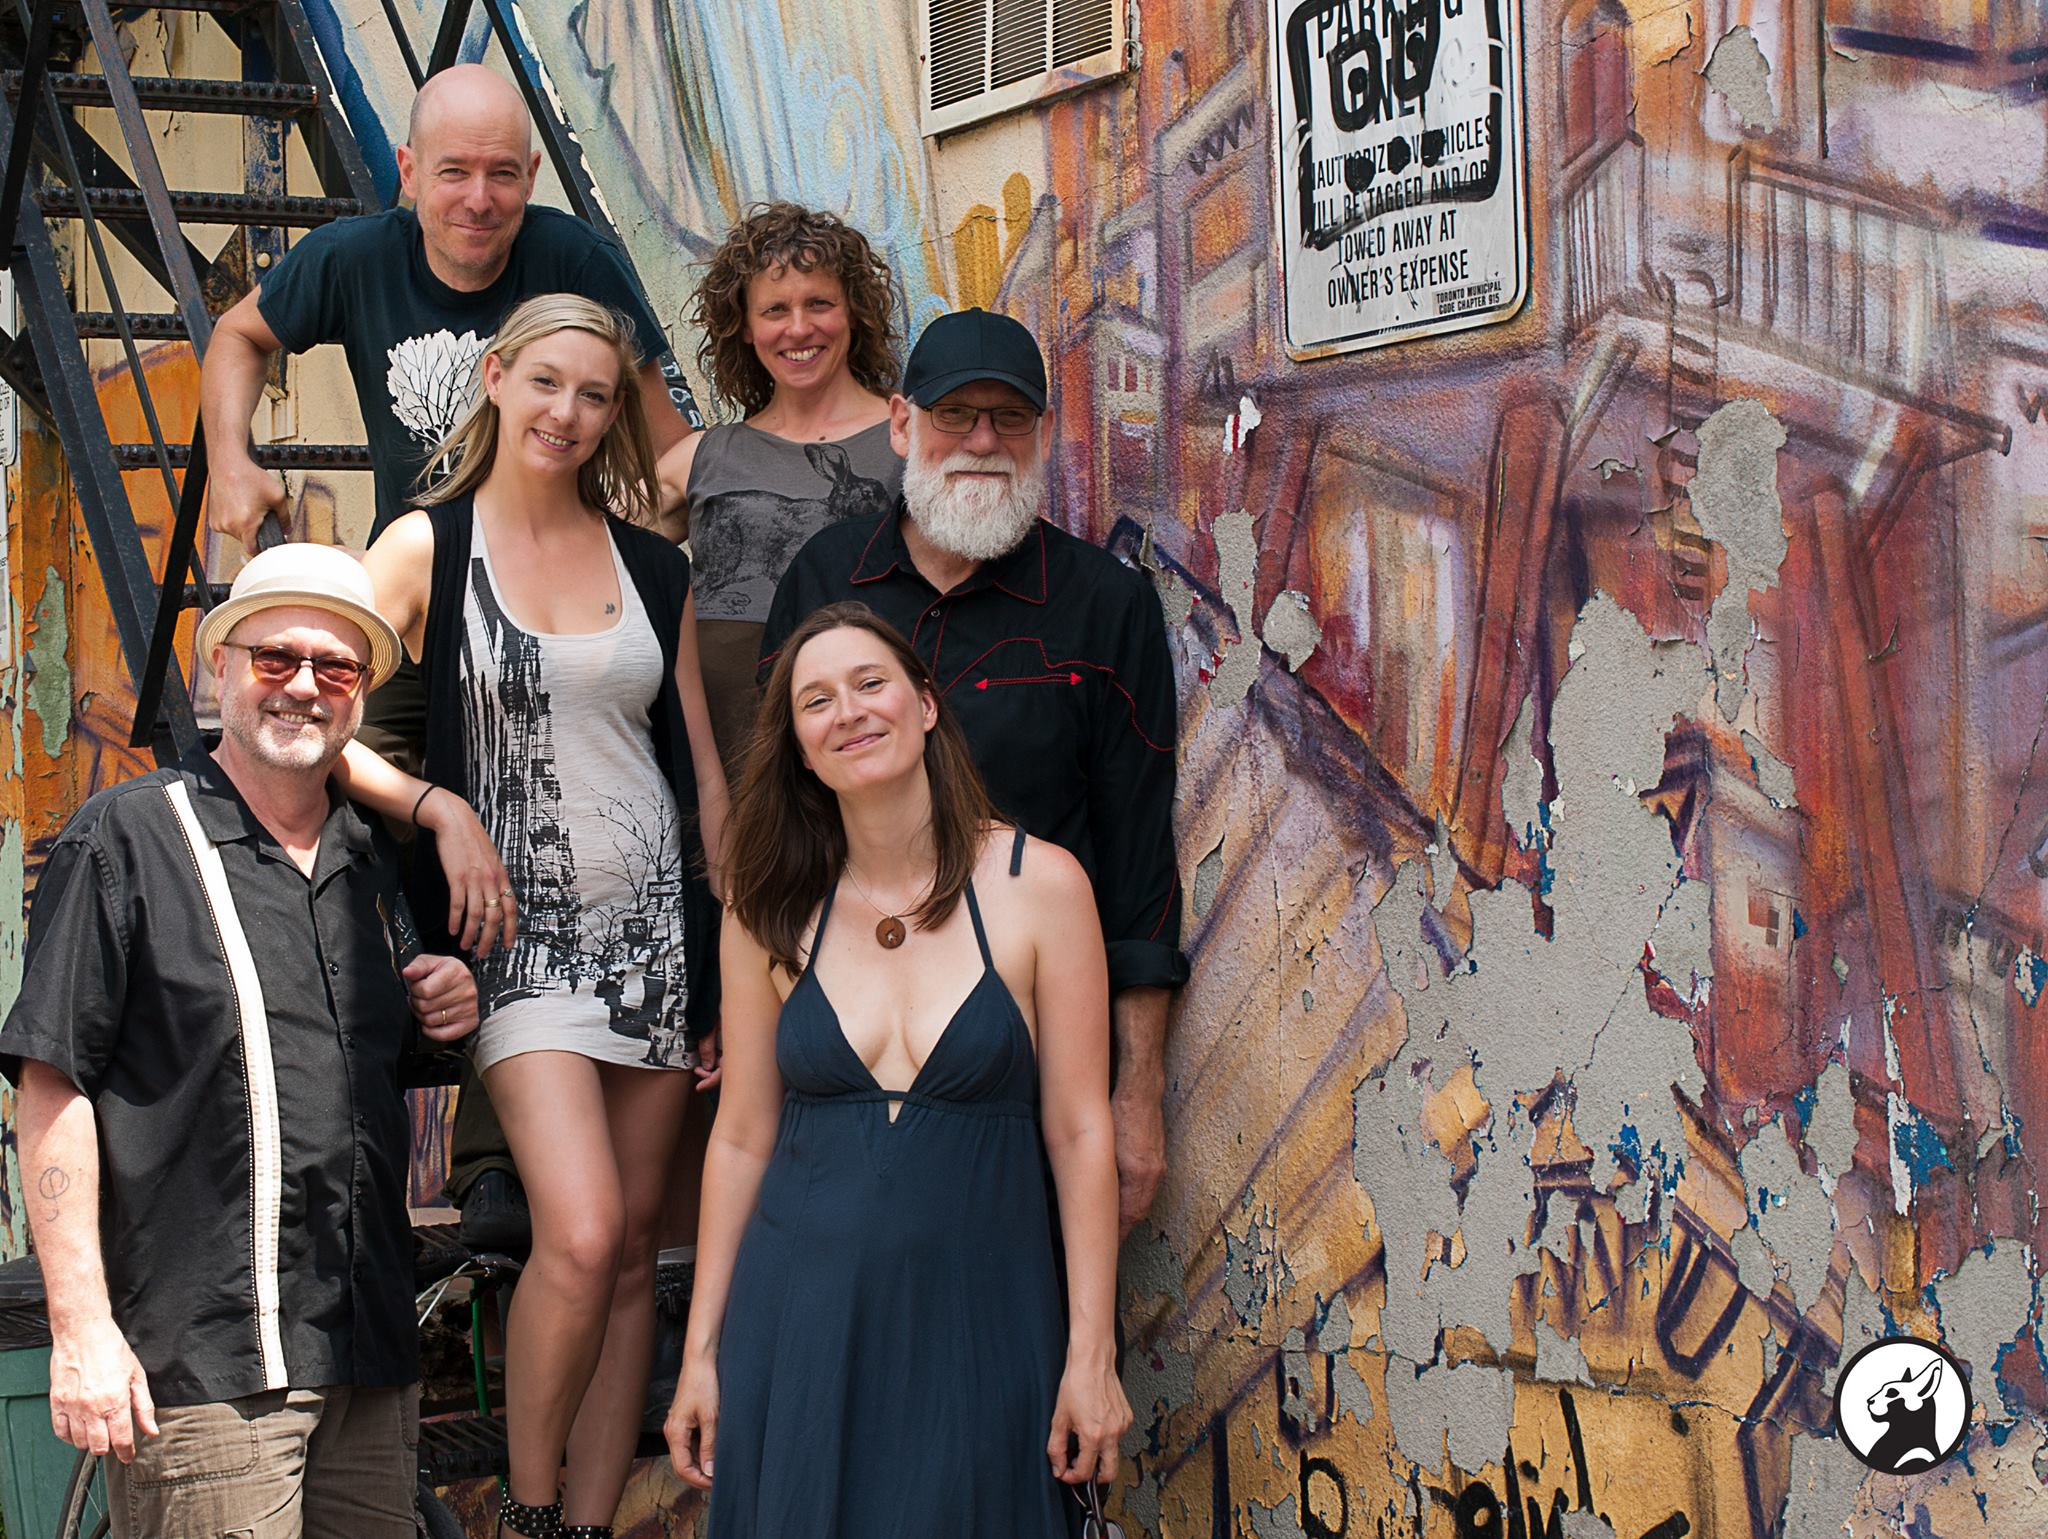 Photo by: Noir Kitty  Outside of the Tranzac Club after the Bloor Street festival show June 2016 photo by Noir Kitty